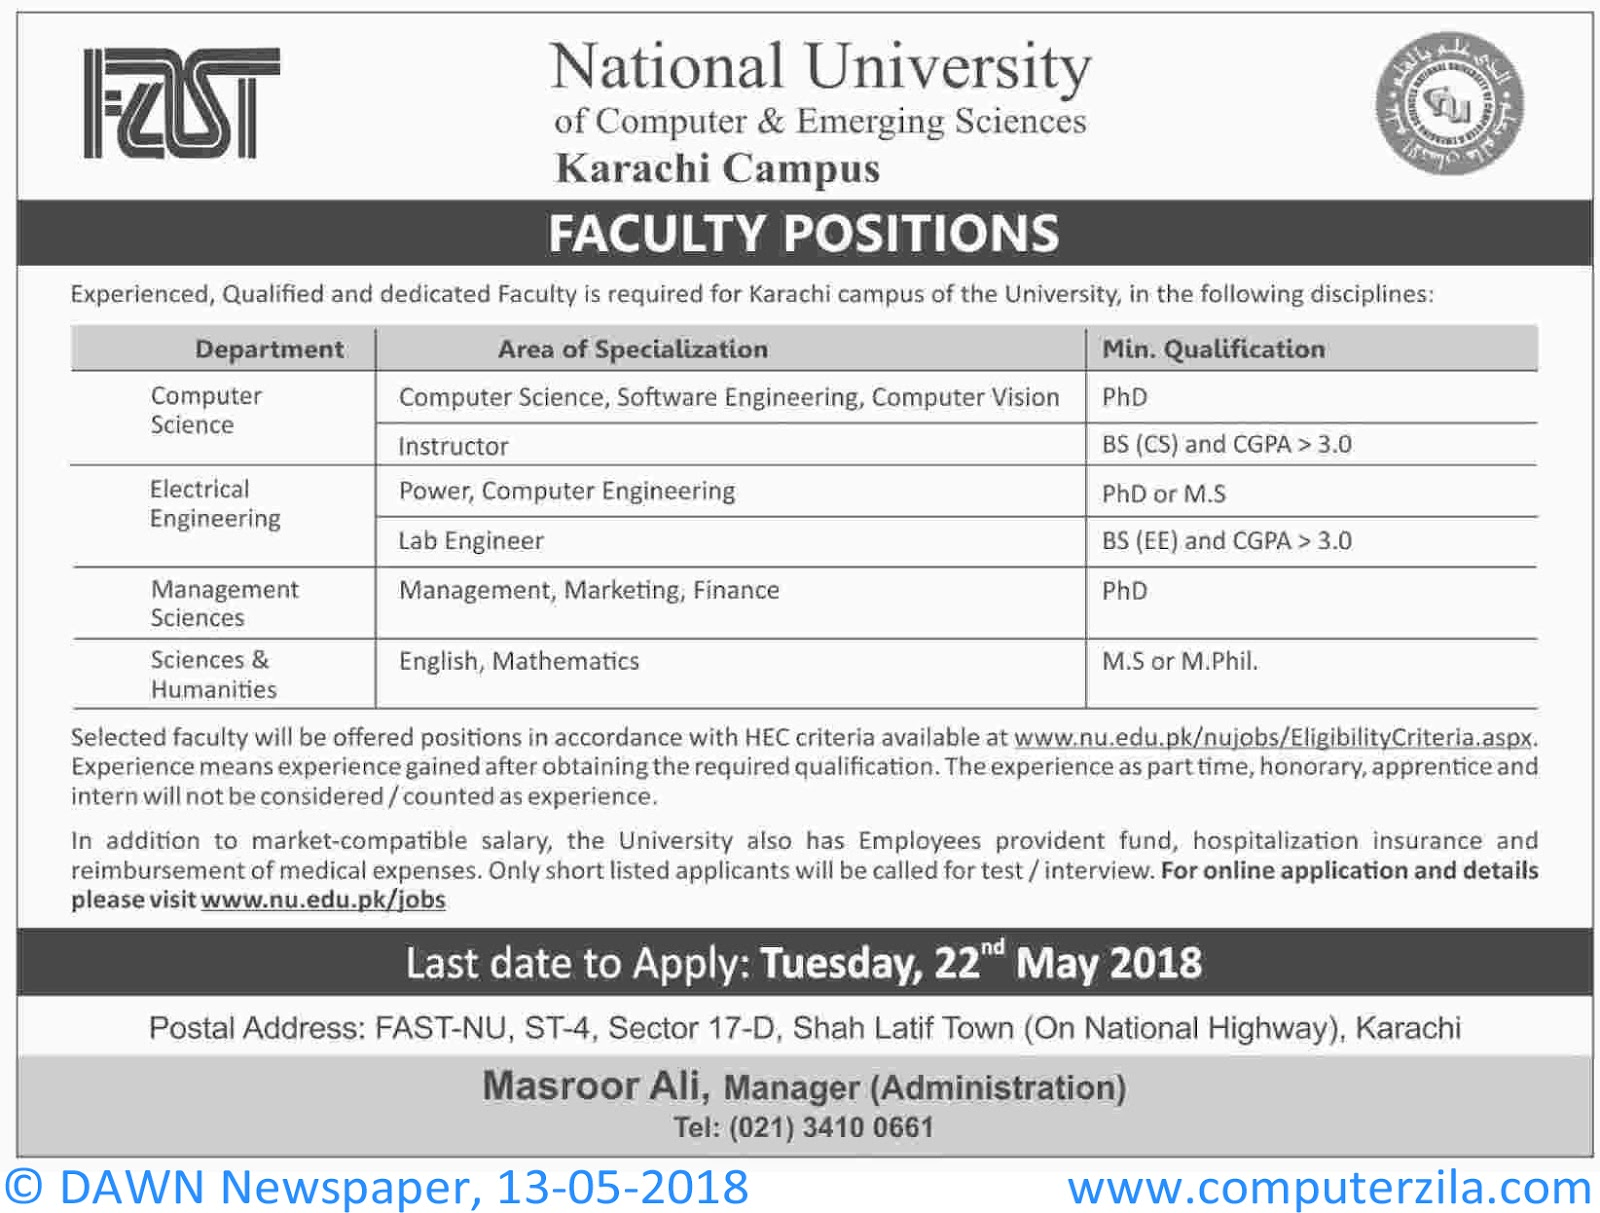 Faculty Positions At FAST at National University of Computer & Emerging Sciences